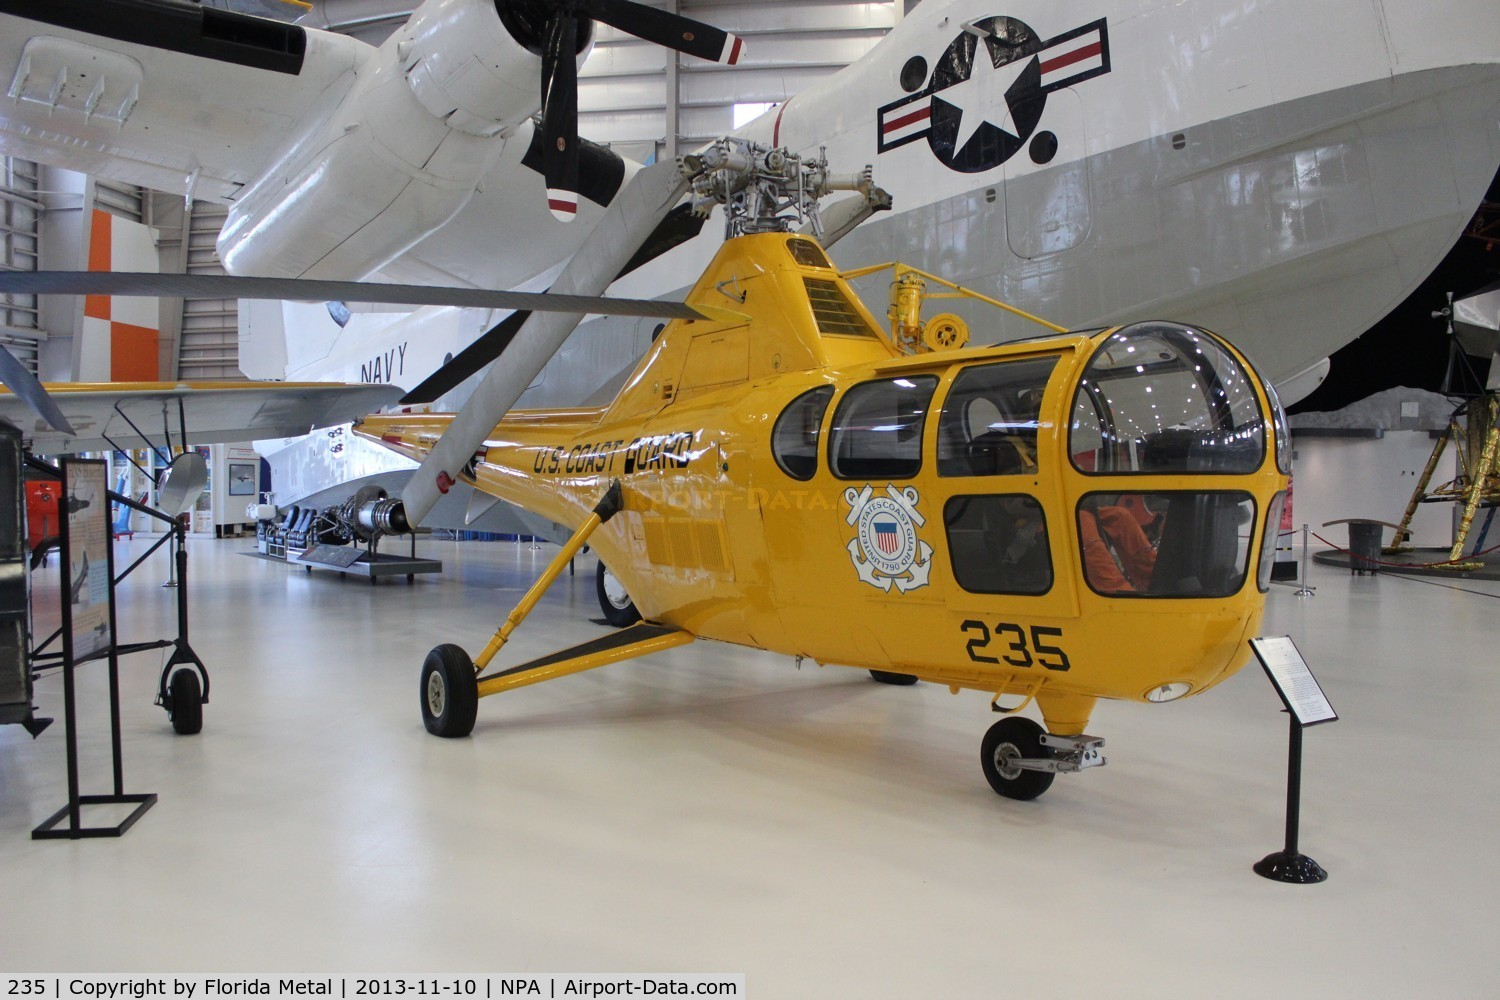 235, 1950 Sikorsky HO3S-1G C/N 51214, H03S-1G at Navy Museum